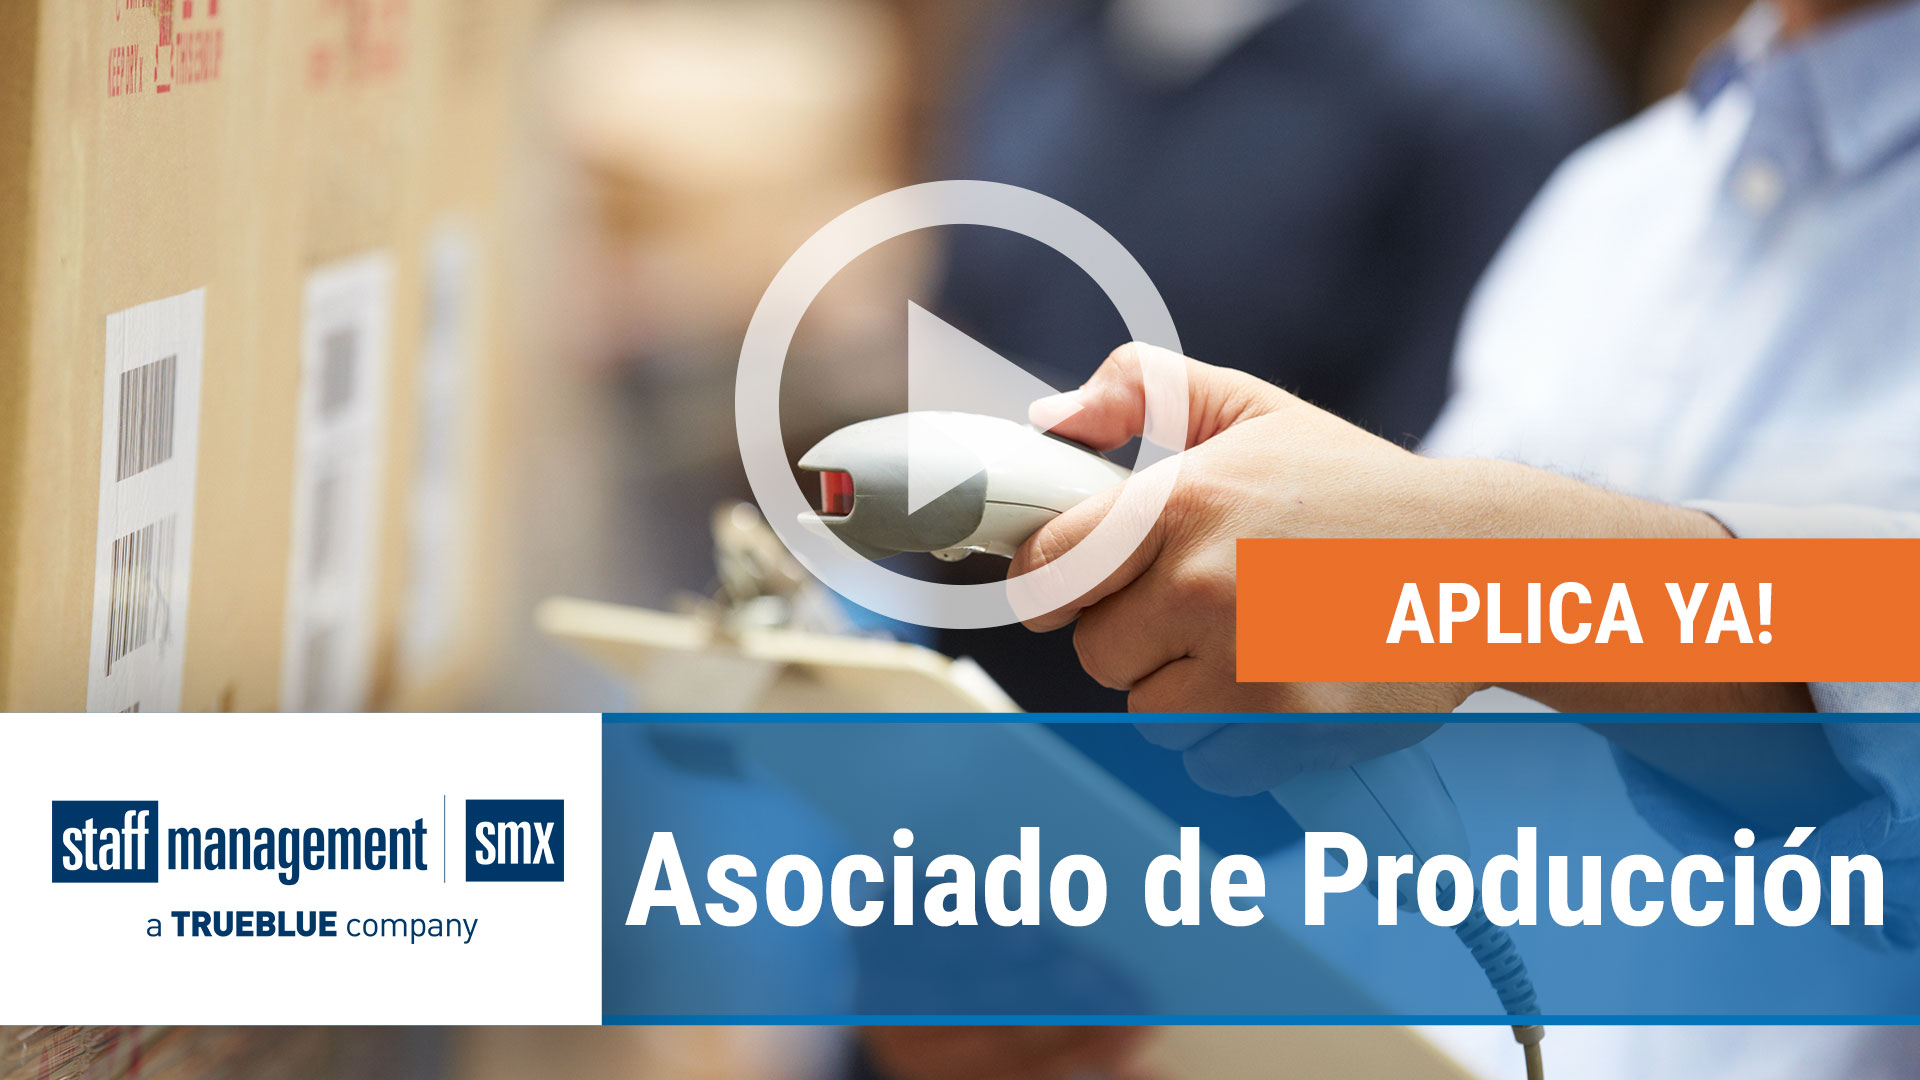 Watch our careers video for available job opening Asociado de Producción in Varies, Varies